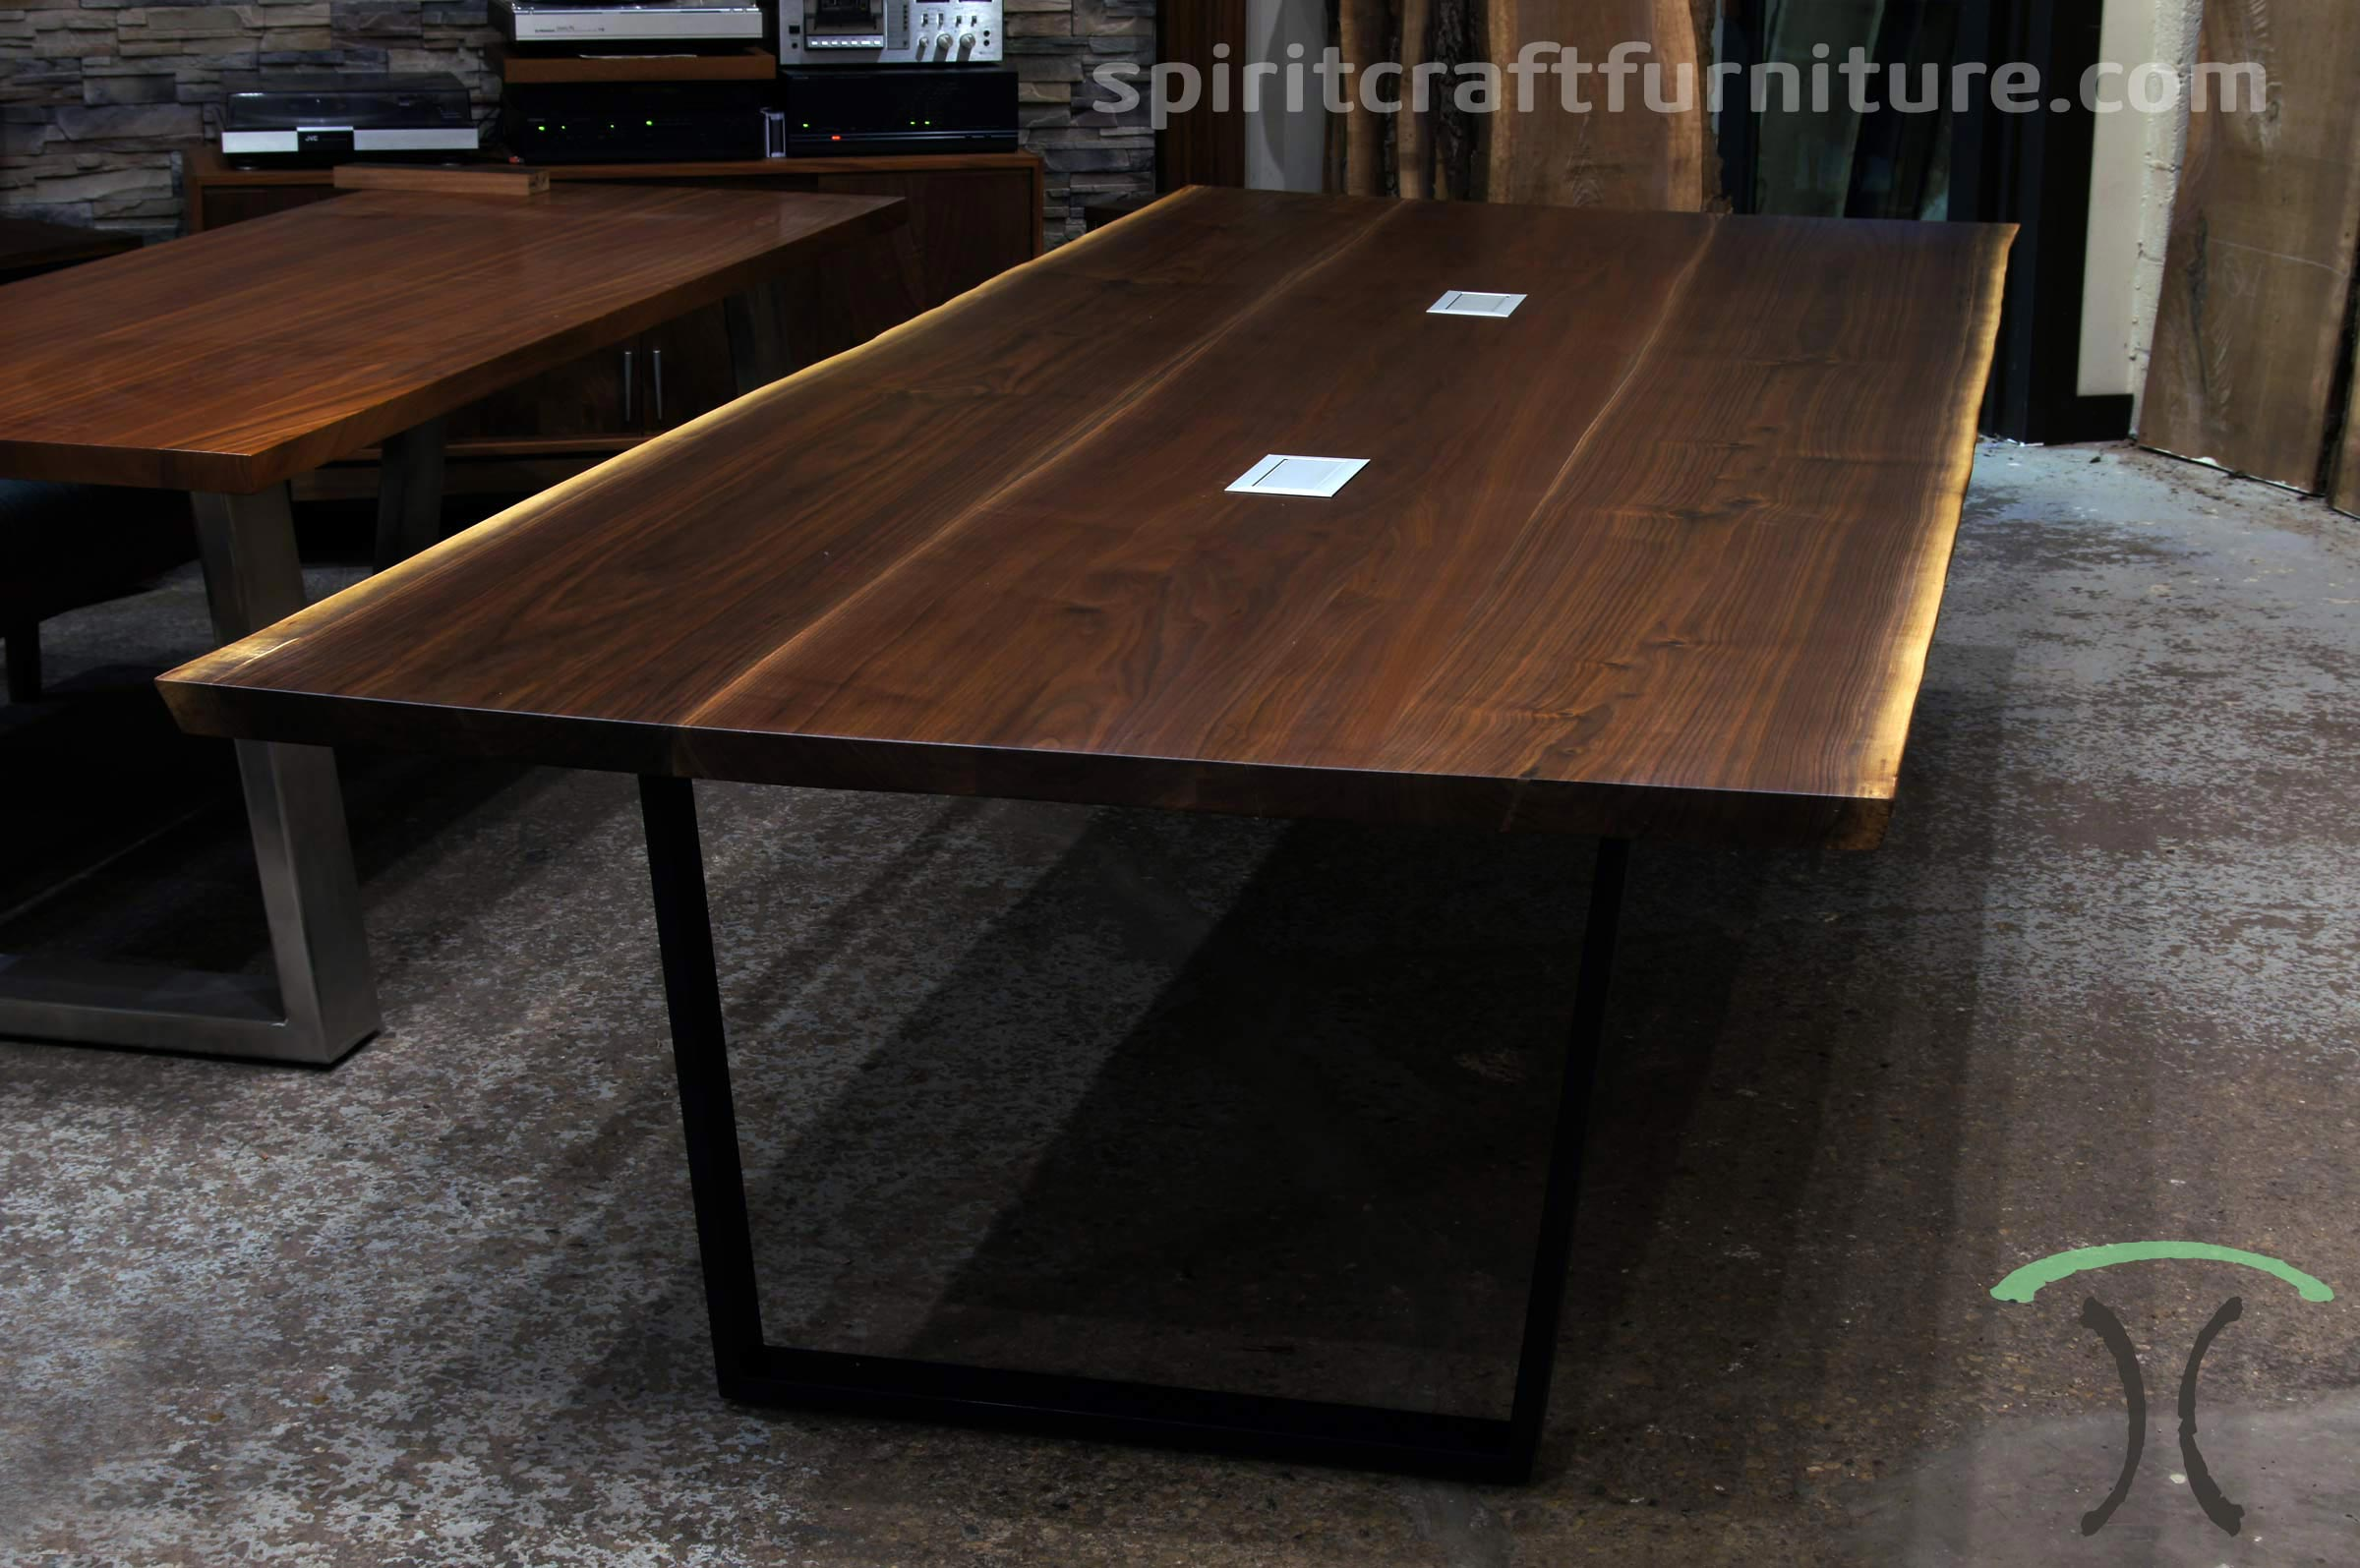 Large live edge conference in solid Black Walnut slabs on steel trapezoid legs at our conference and dining table showroom and store in the Chicago area, East Dundee, Illinois